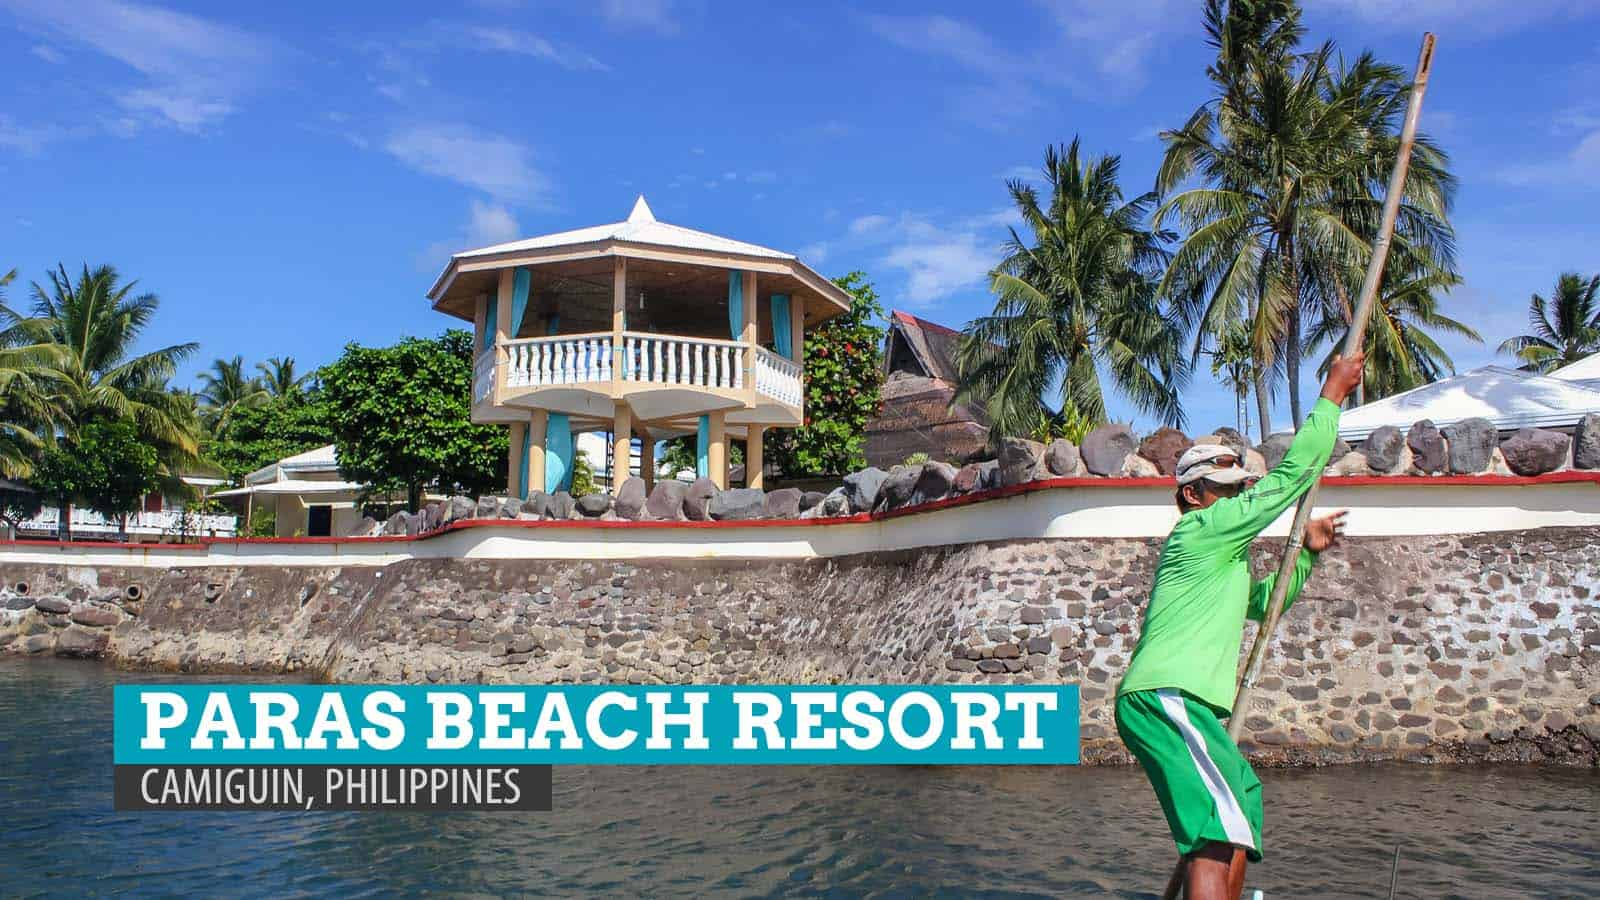 PARAS BEACH RESORT in Camiguin, Philippines